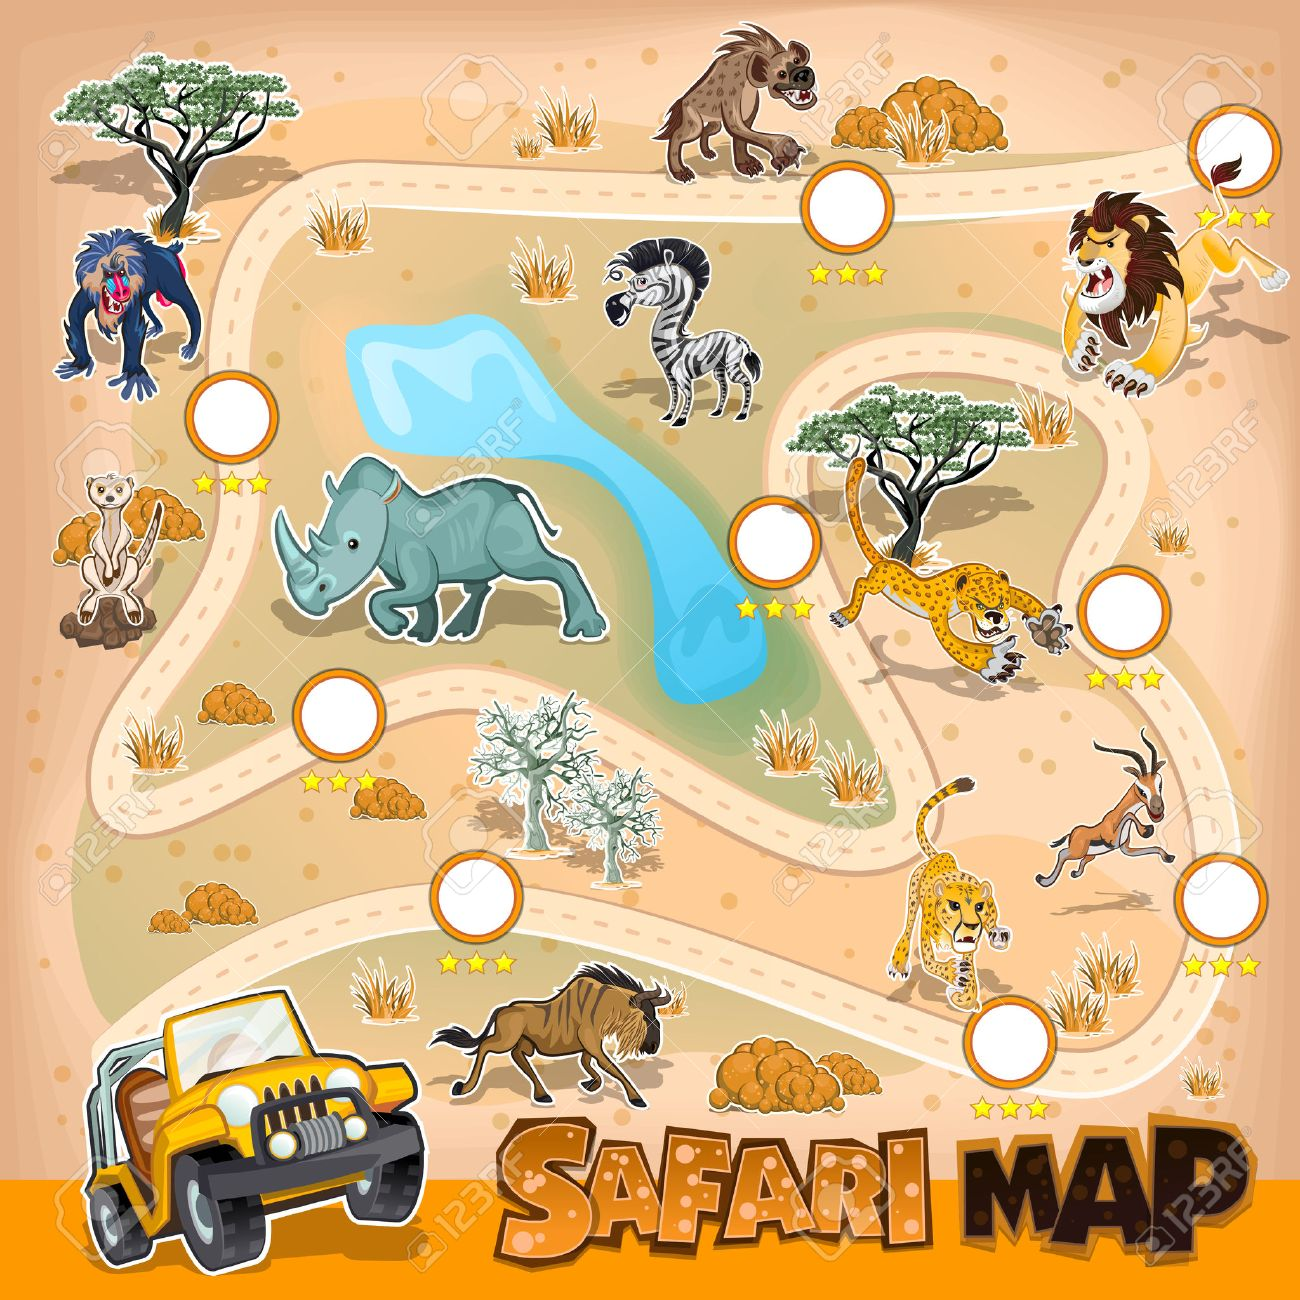 hight resolution of africa safari map wildlife illustration